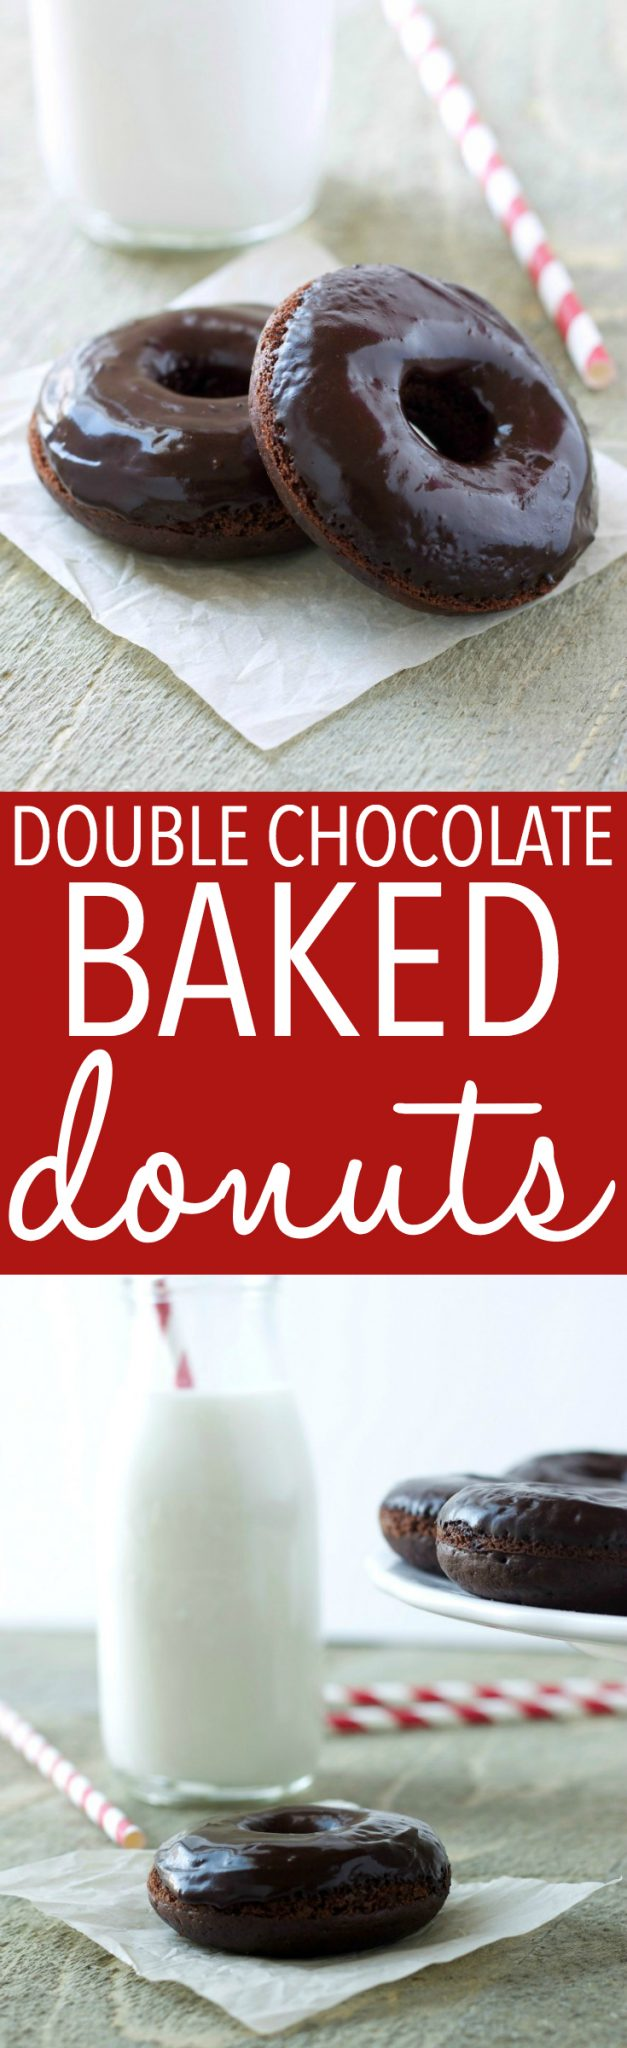 These Healthier Double Chocolate Baked Donuts are the perfect low-fat sweet treat to satisfy those chocolate cravings! Made with less sugar and fat than a traditional donut and baked to perfection with a chocolatey glaze, these Healthier Double Chocolate Baked Donuts are easy to make and totally delicious! Recipe from thebusybaker.ca! #healthydonuts #easybakeddonuts #donutrecipe #chocolatedonutrecipe via @busybakerblog